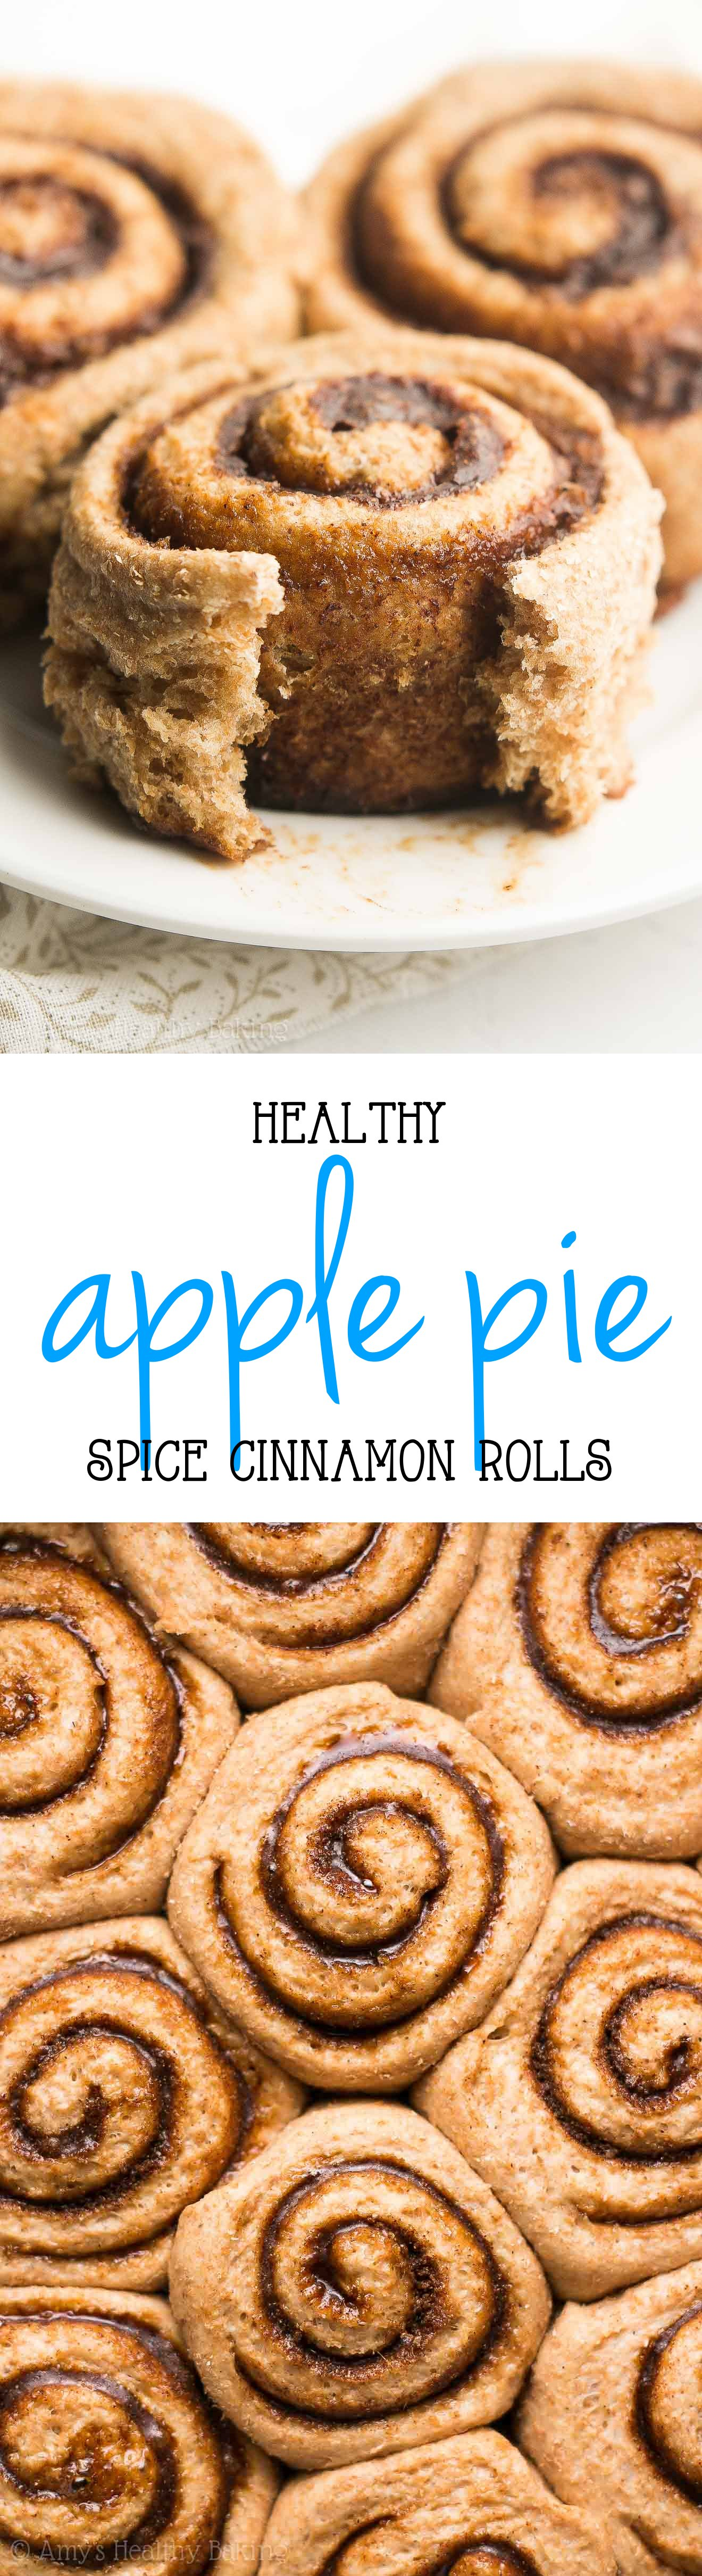 Healthy Apple Pie Spice Cinnamon Rolls -- only 112 calories + the BEST I've ever tasted! You'll never use another cinnamon roll recipe again! {The secret's in the spice blend!!}